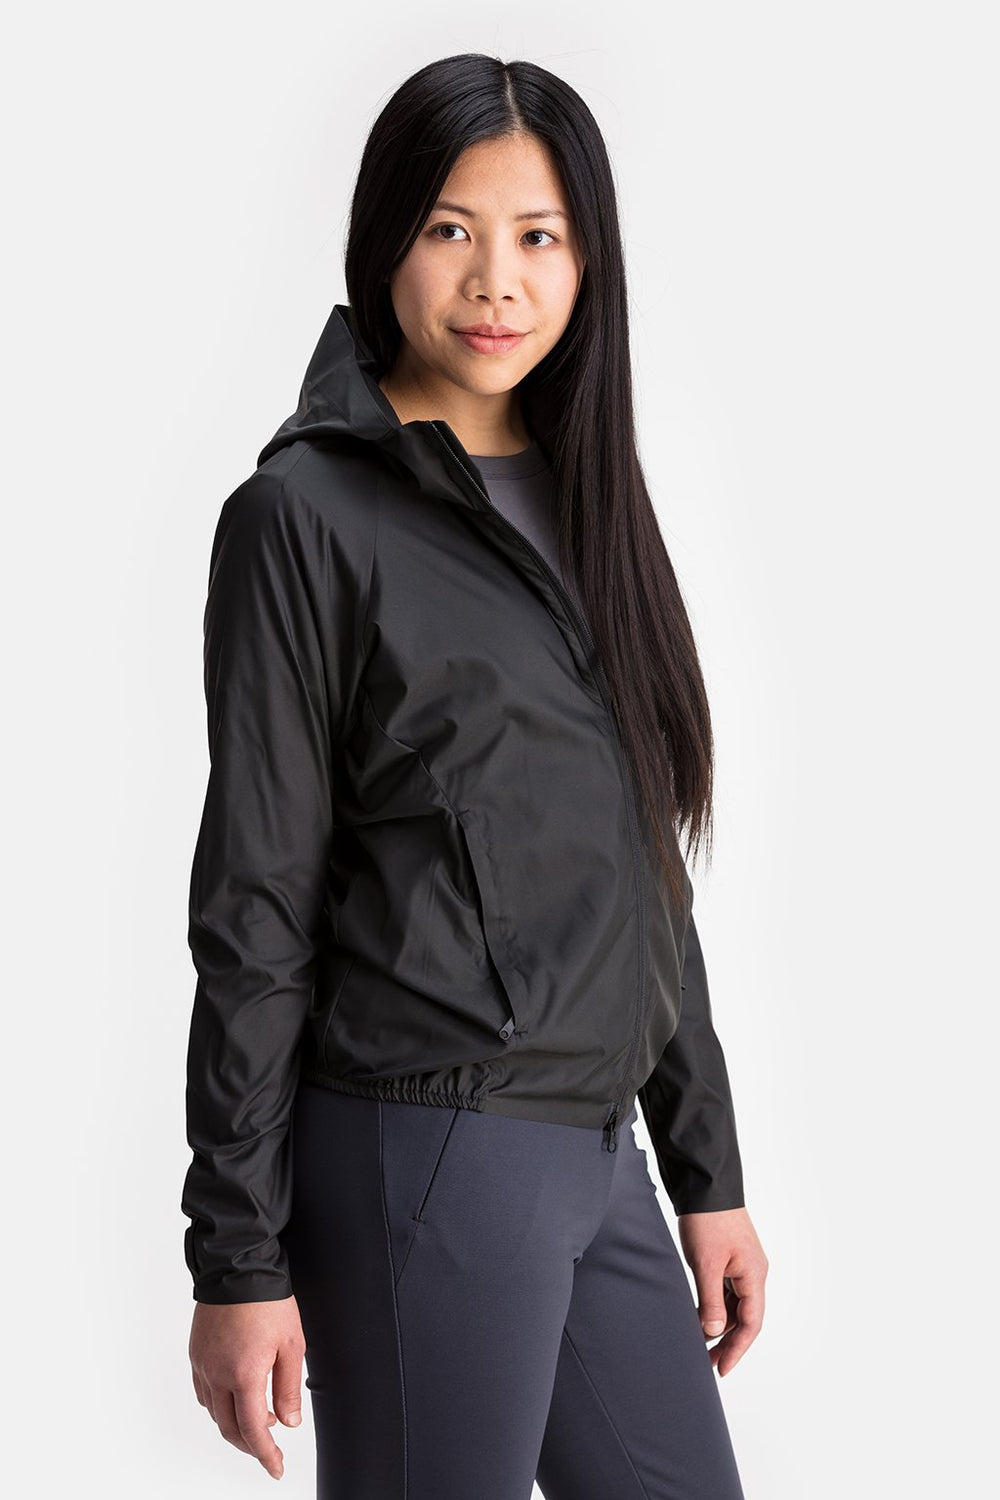 RYU Womens Wind Shell Jacket in Platinum / Sleeve Print